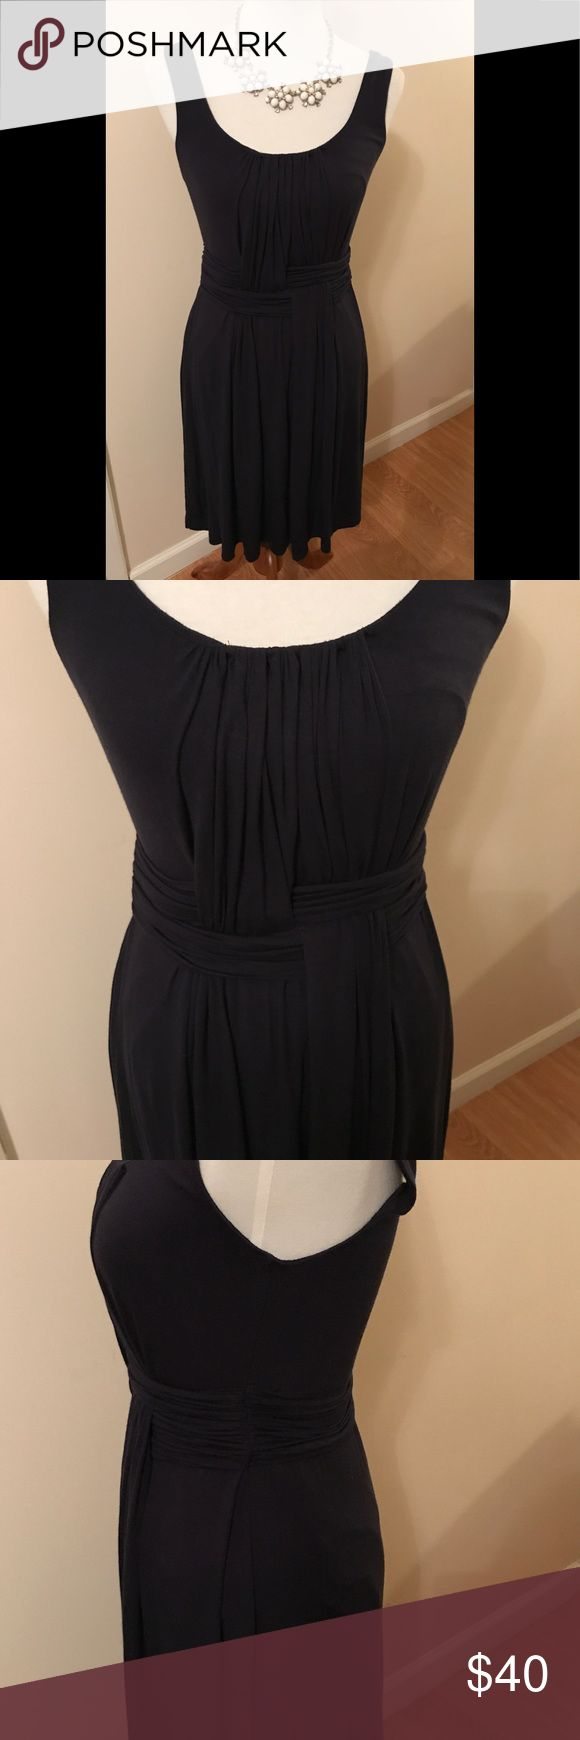 Anthropologie Bailey 44 dress This is such a great dress for that beautiful spring/summer day. Beautiful weave pattern in the front that can hide any pooch. Jersey material so easy to pack. Worn and laundered once. Hard to see but it is dark Navy (not Black). No trades. No low offers. Anthropologie Dresses